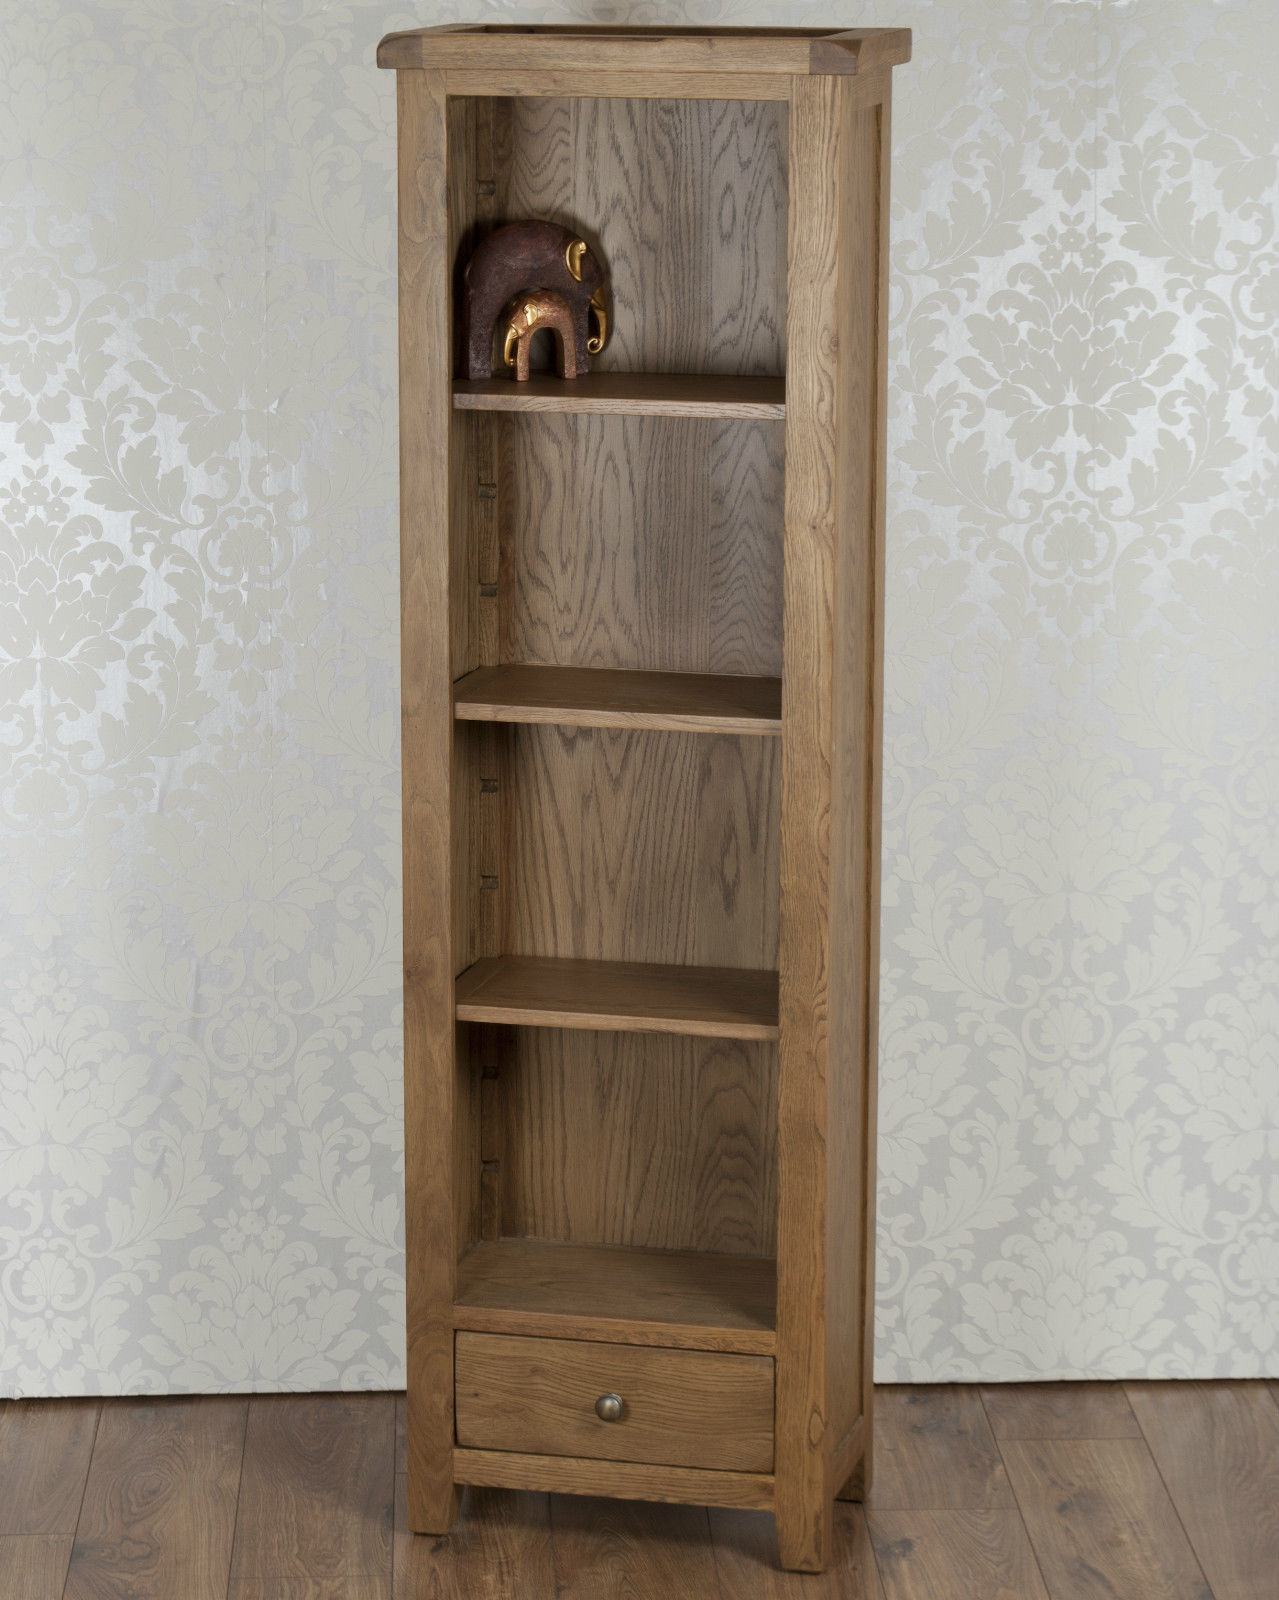 Solid Oak Display Cabinet Slim Bookcase Storage Unit In Chunky Dorset Country